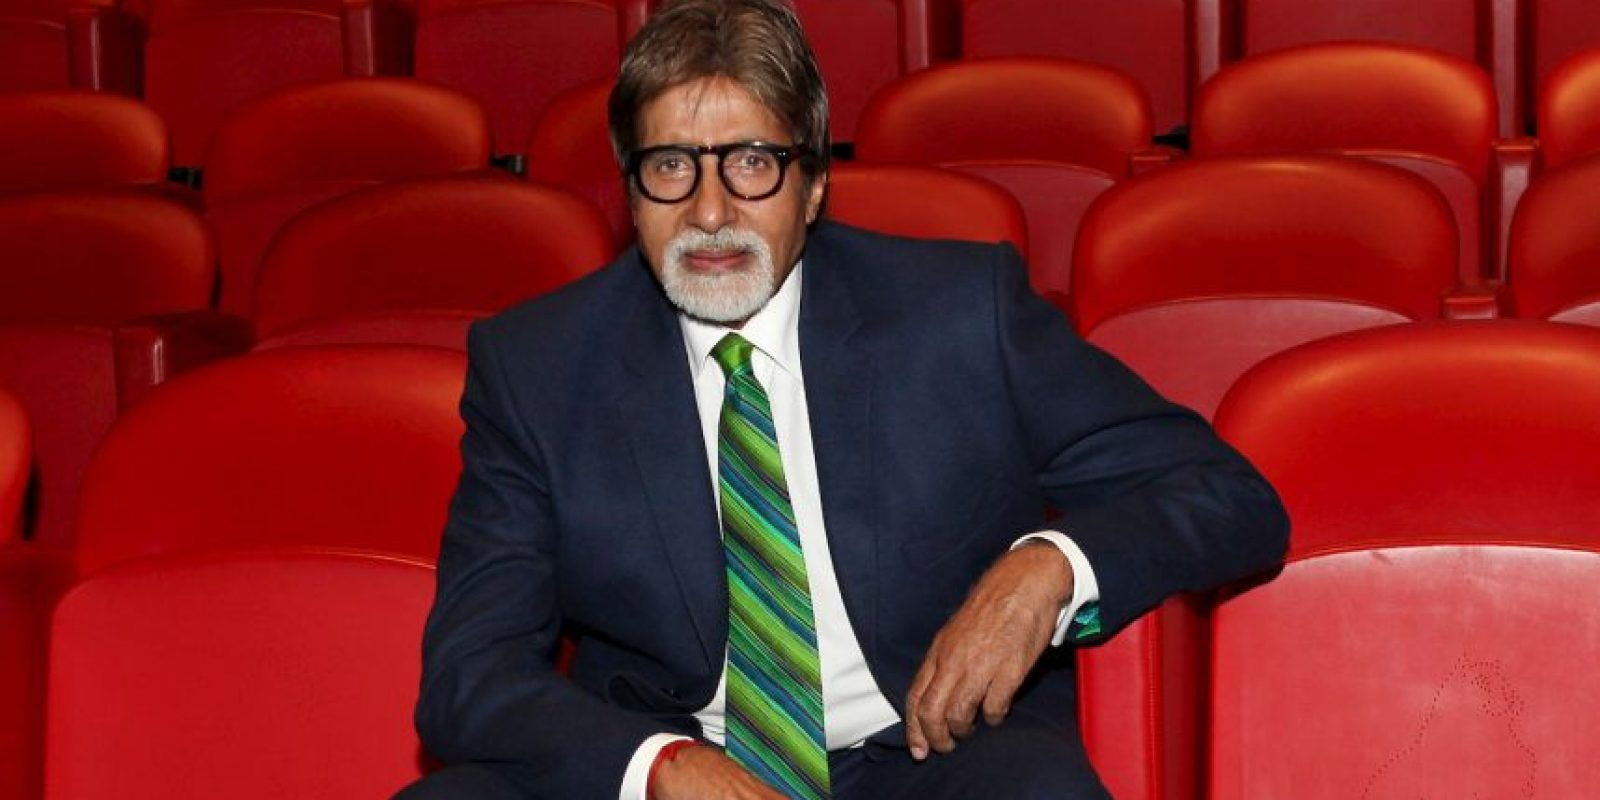 Amitabh Bachchan Foto: Getty Images